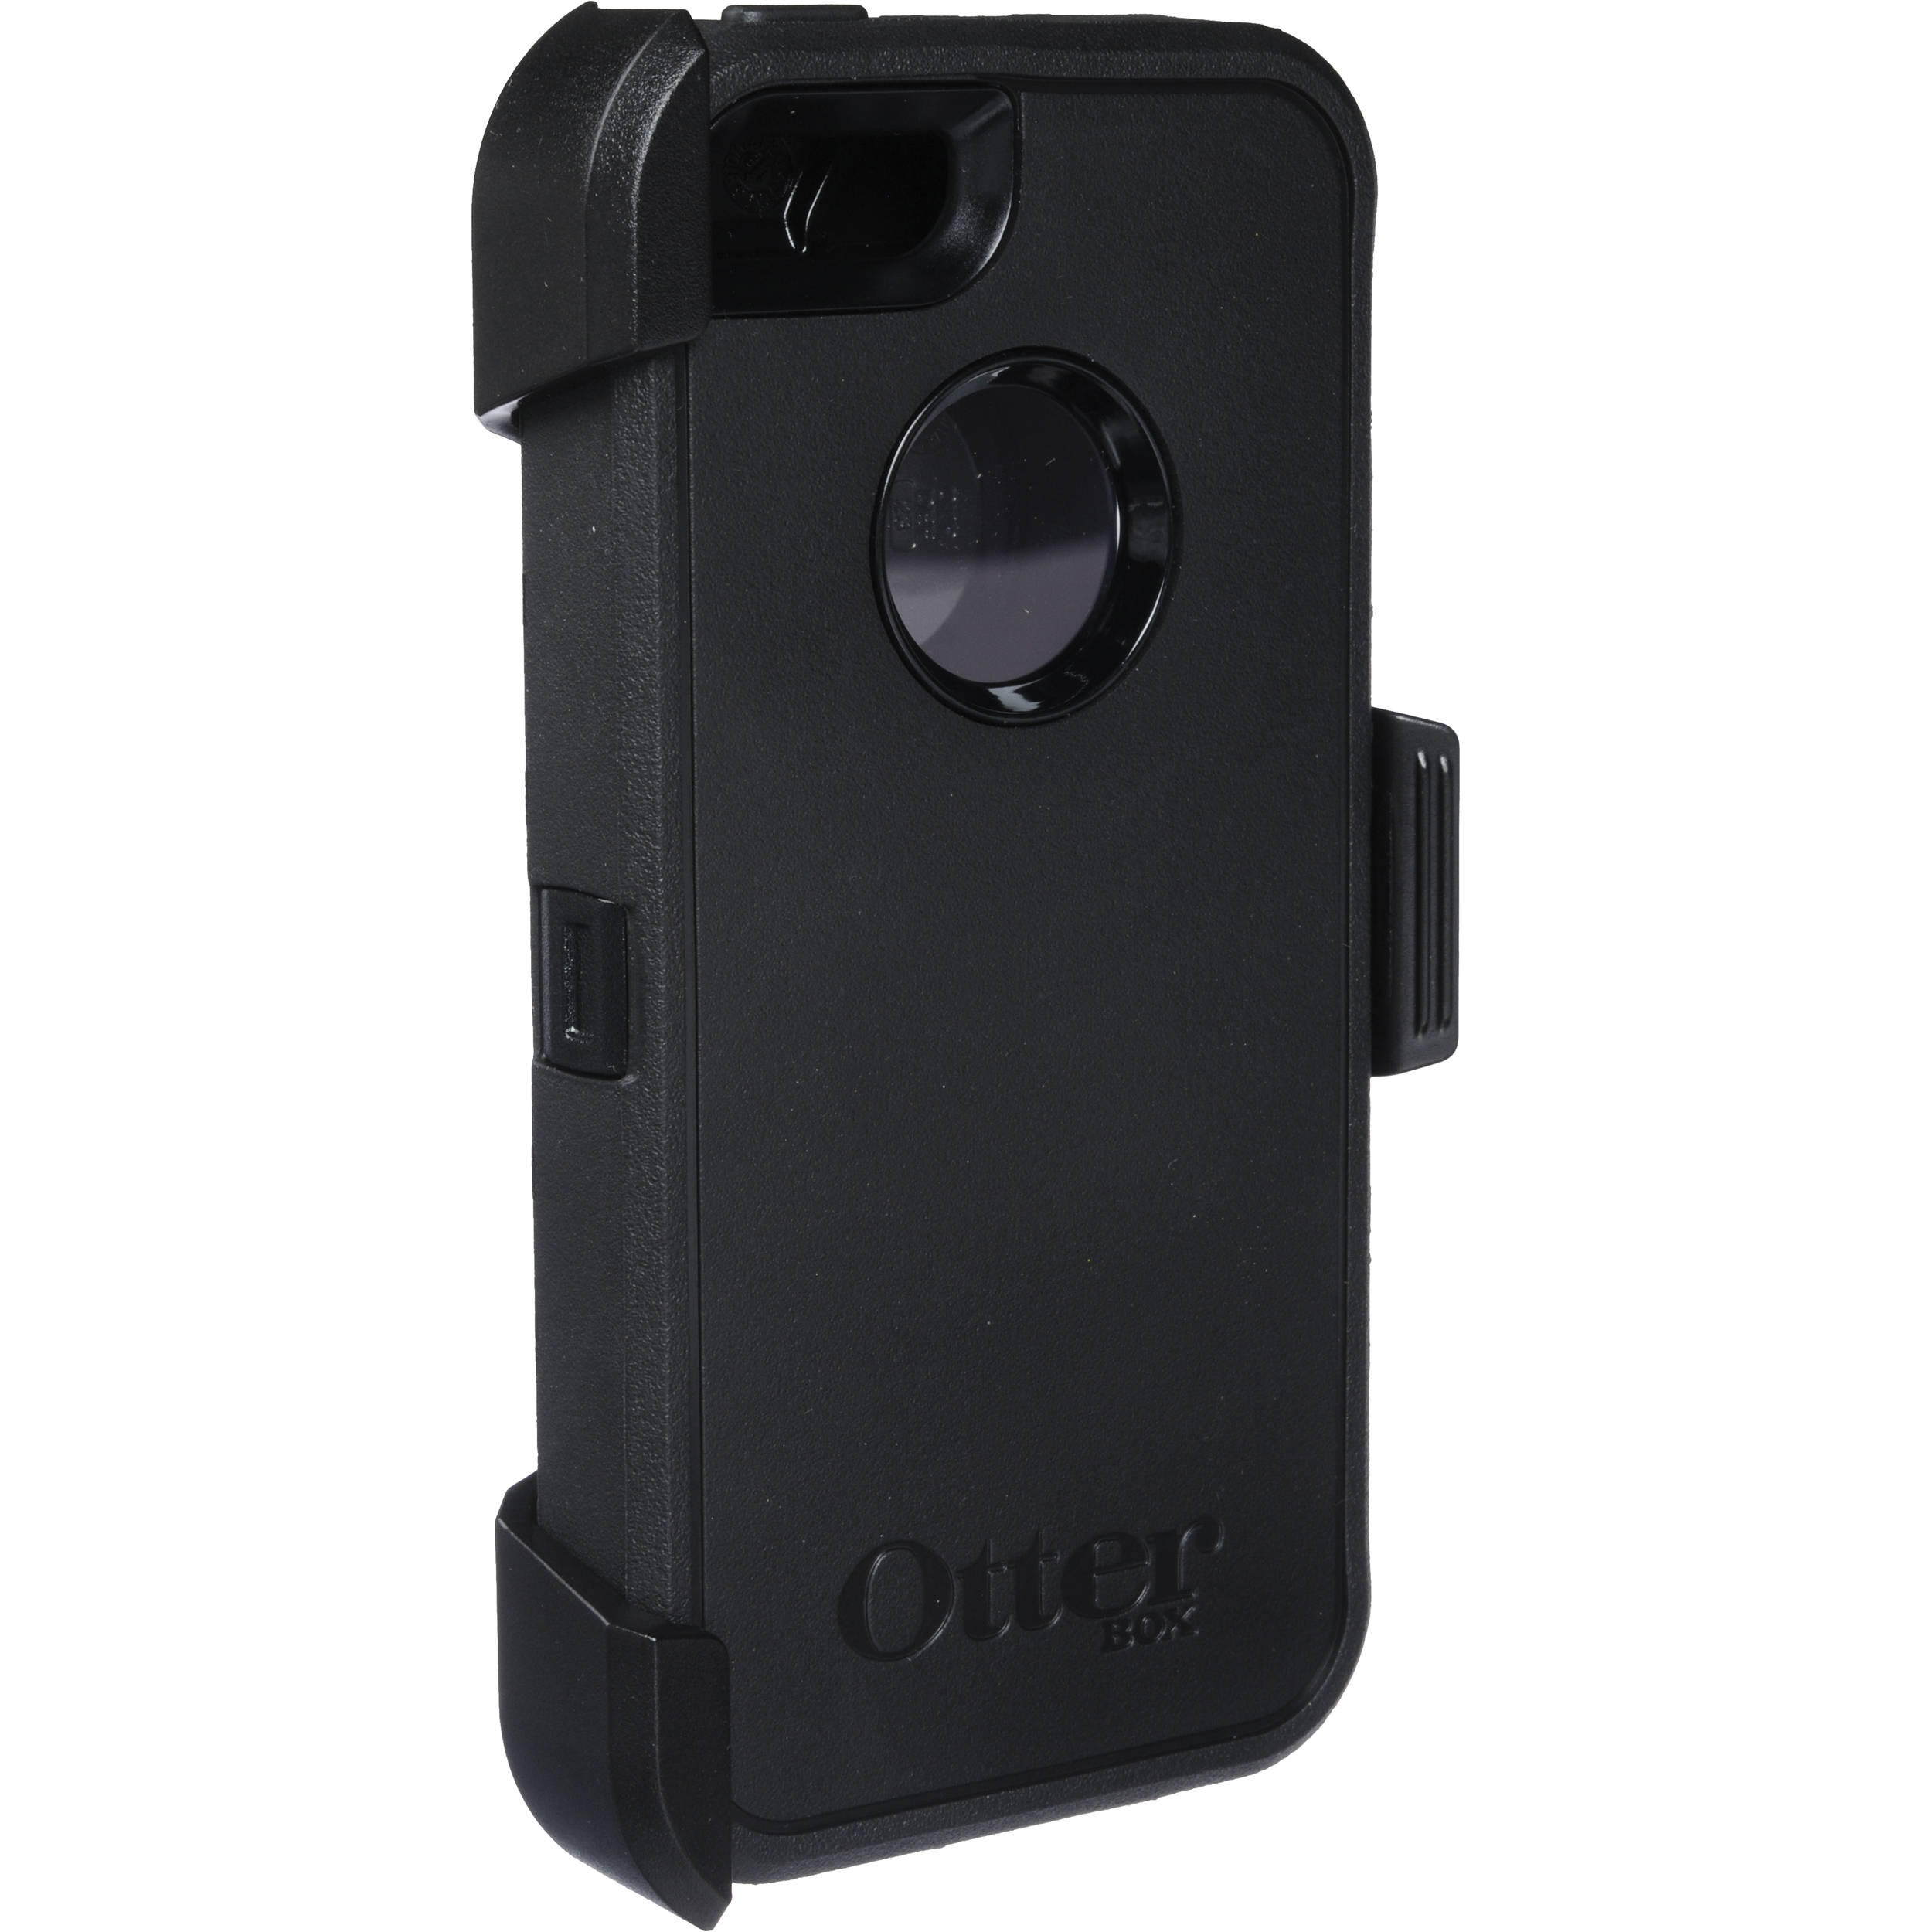 sports shoes 39c14 a7d99 OtterBox Defender Series Case for iPhone 5/5s/SE (Black)